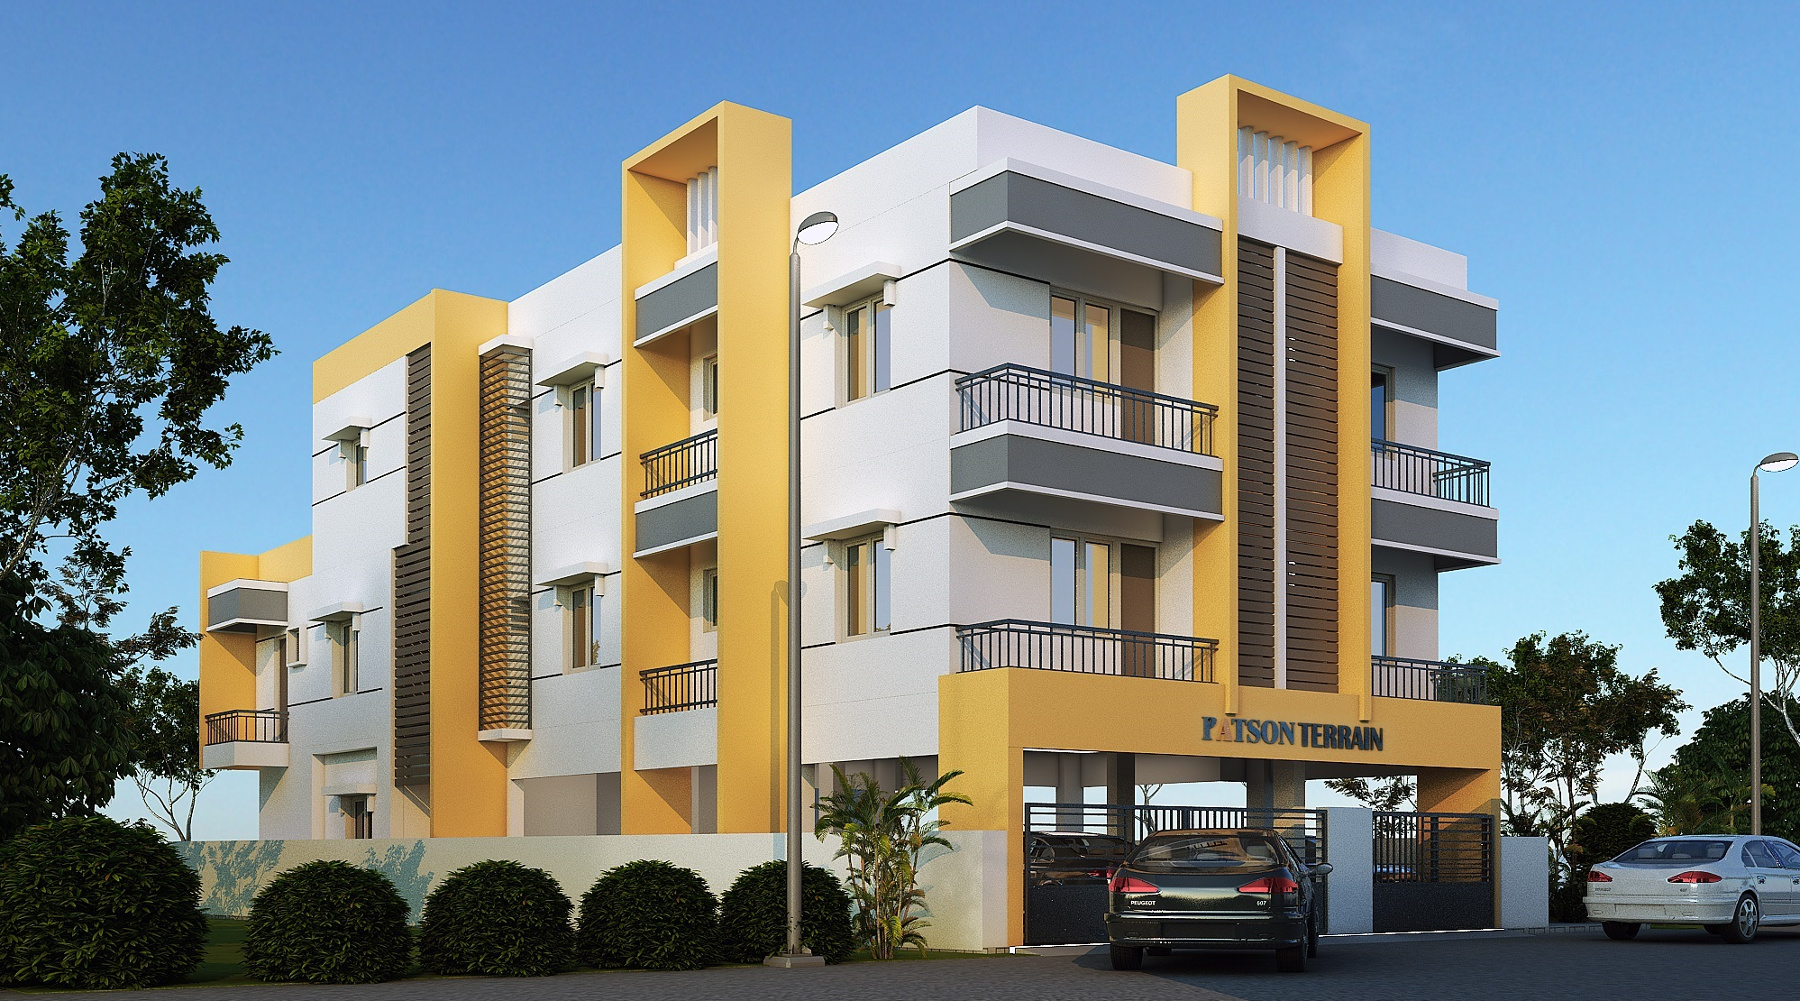 5 Floor Apartment Elevation : Bhk cluster plan image patson pyramid for sale at